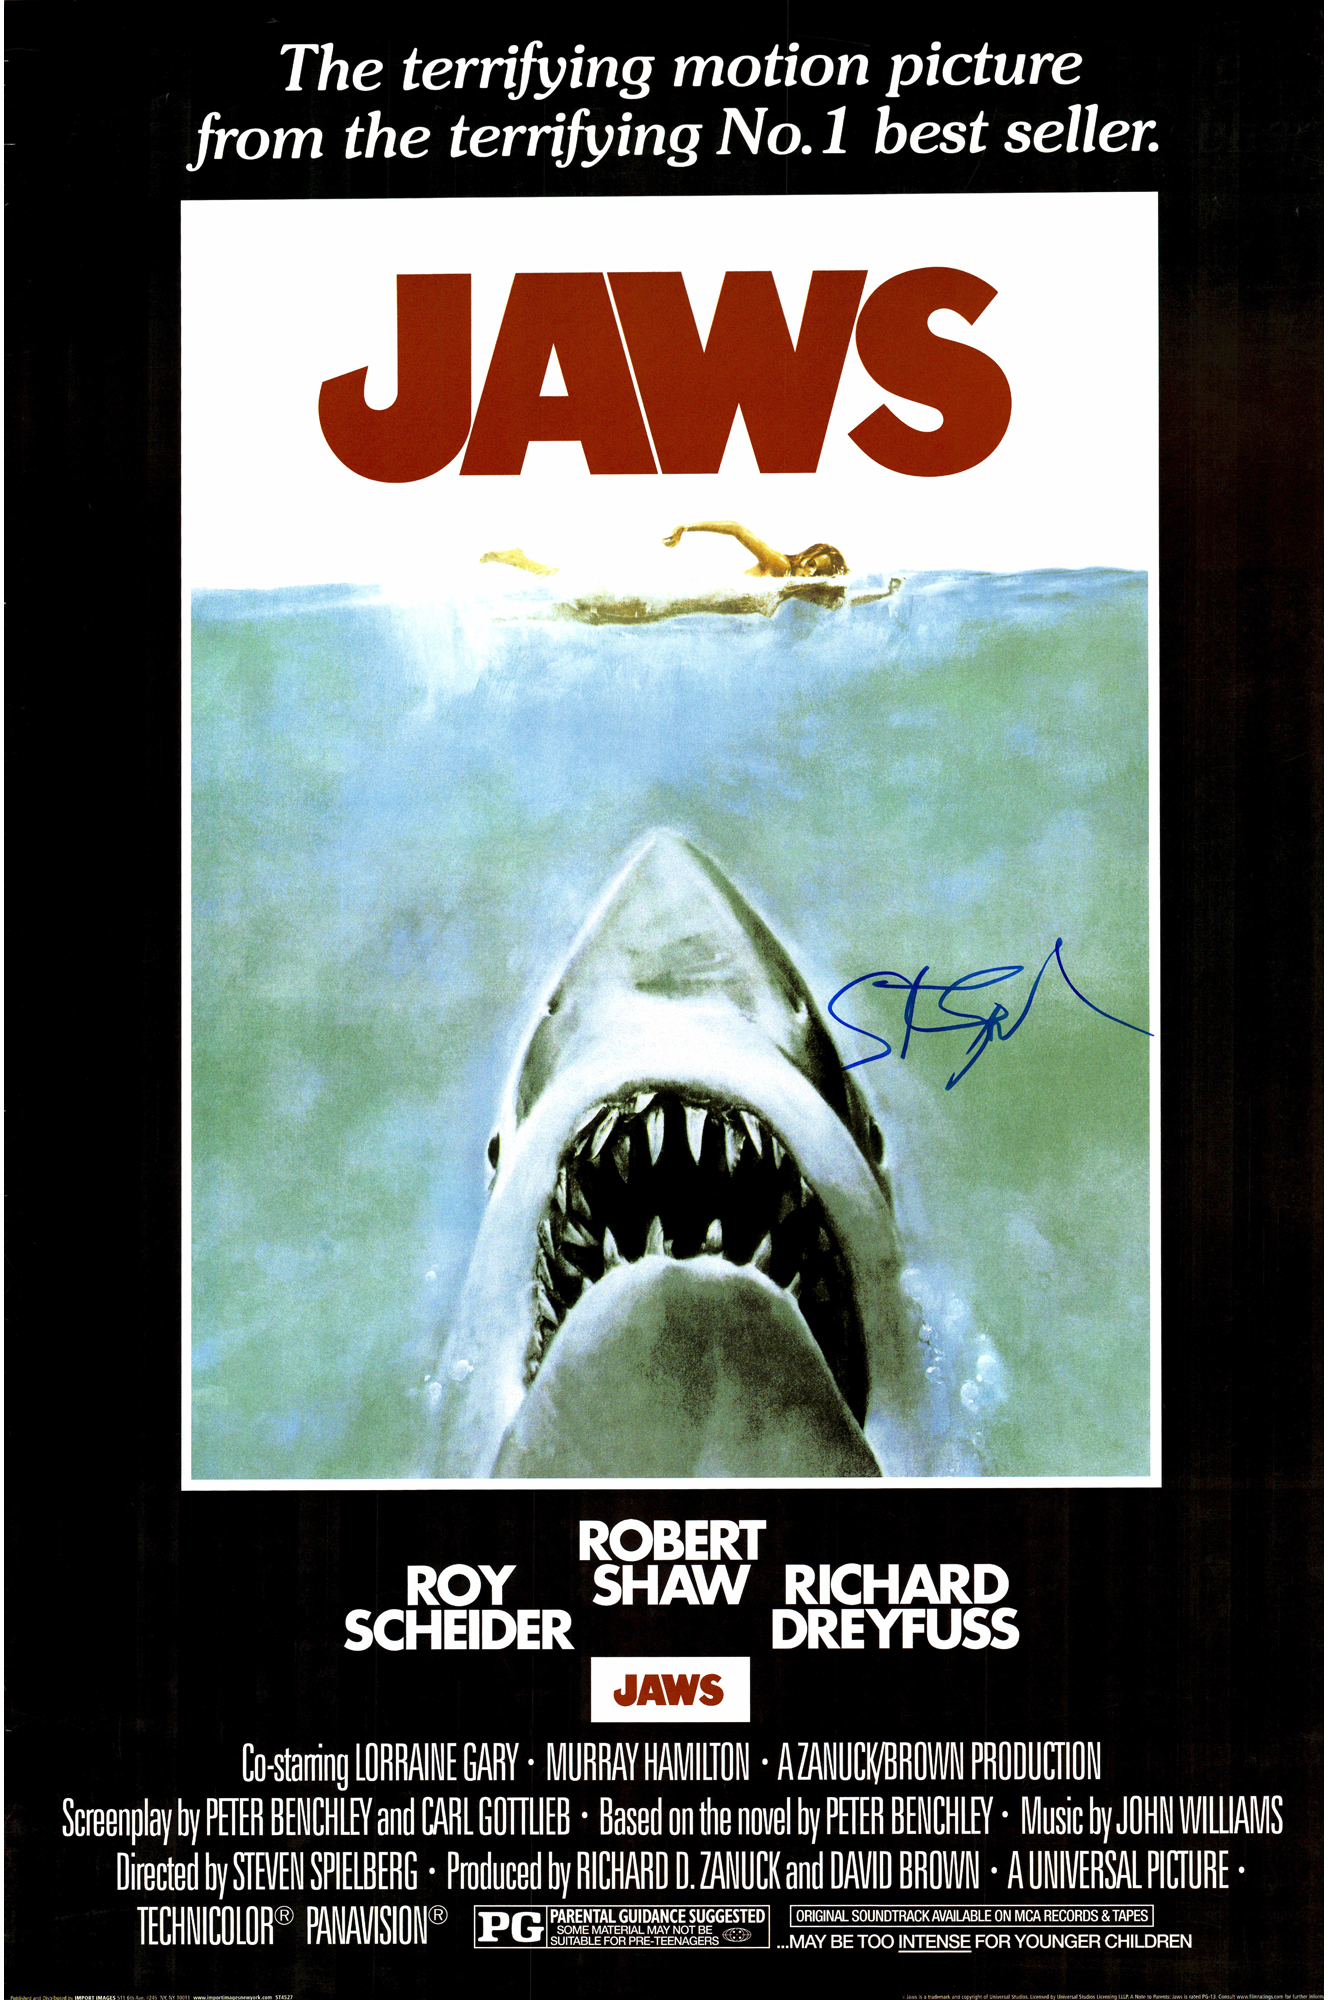 Steven Spielberg Autographed Jaws Movie Poster